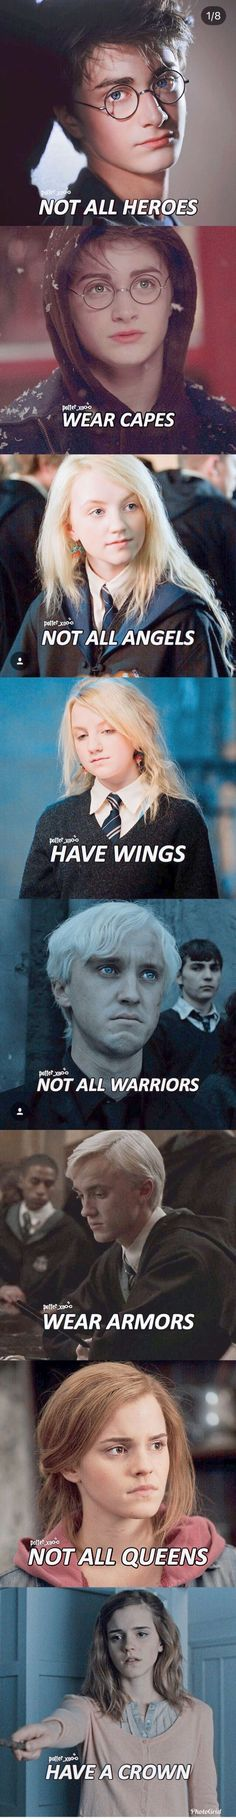 Yep, it's under Harry Potter funny! Bc Draco (as much as I love him) he ain'… Yep, it's under Harry Potter funny! Bc Draco (as much as I love him) he ain'…,Hogwarts/Harry Potter/…❤️⚡️ Yep,. Harry Potter Tumblr, Harry Potter World, Estilo Harry Potter, Mundo Harry Potter, Harry Potter Spells, Harry Potter Pictures, Harry Potter Jokes, Harry Potter Cast, Harry Potter Characters